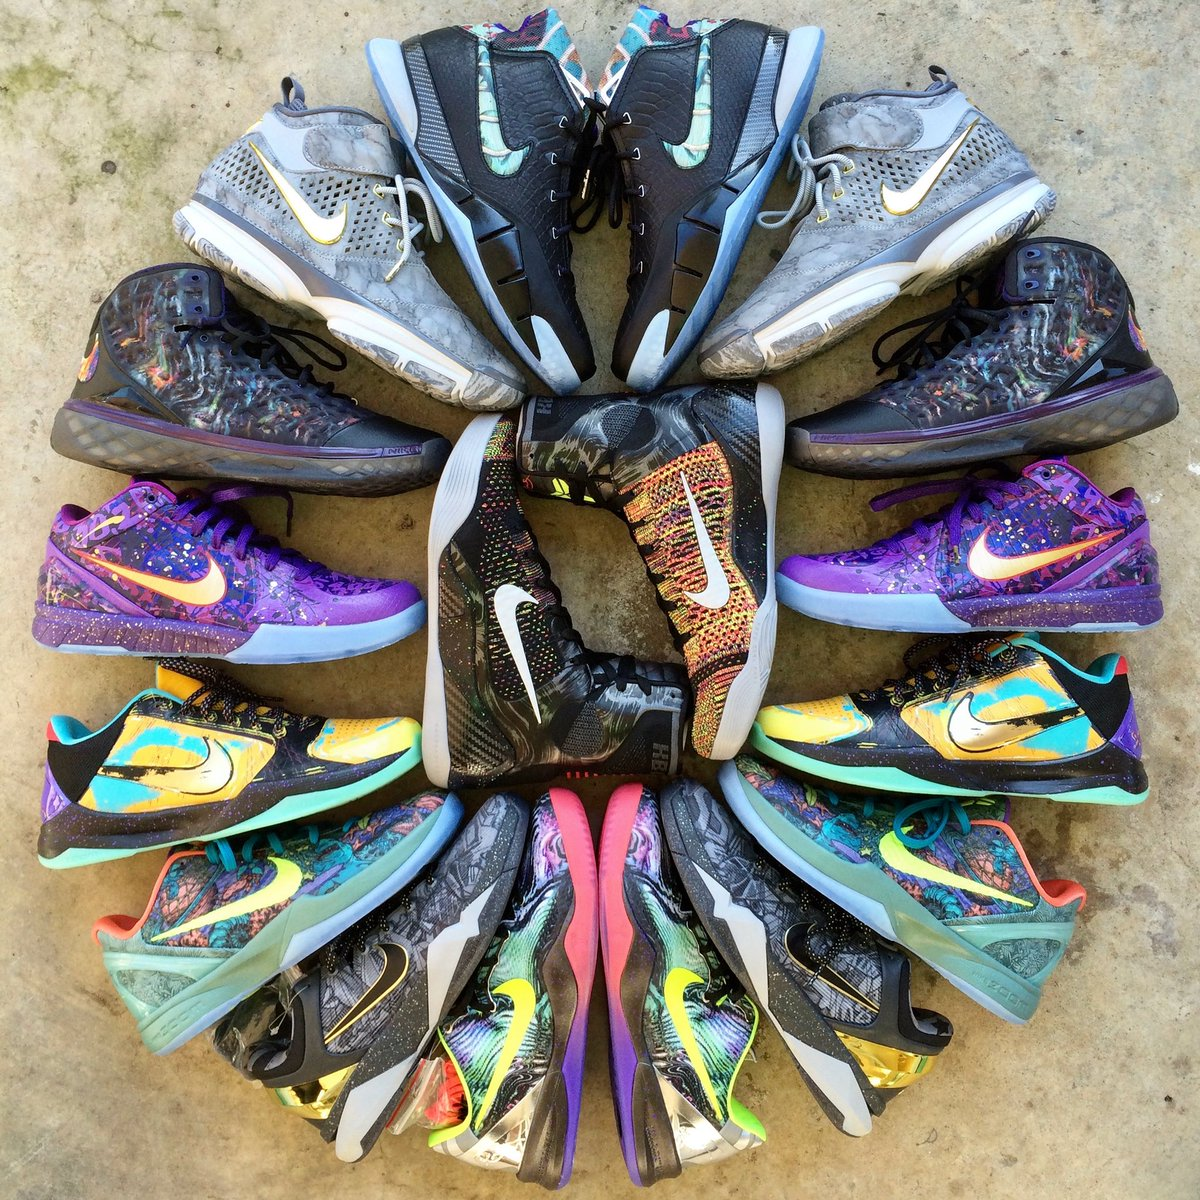 I still remember grabbing this entire pack for retail during All Star week. These will always be part of my collection RIP Kobe 🙏🏽 https://t.co/W9Cdqb1Acp